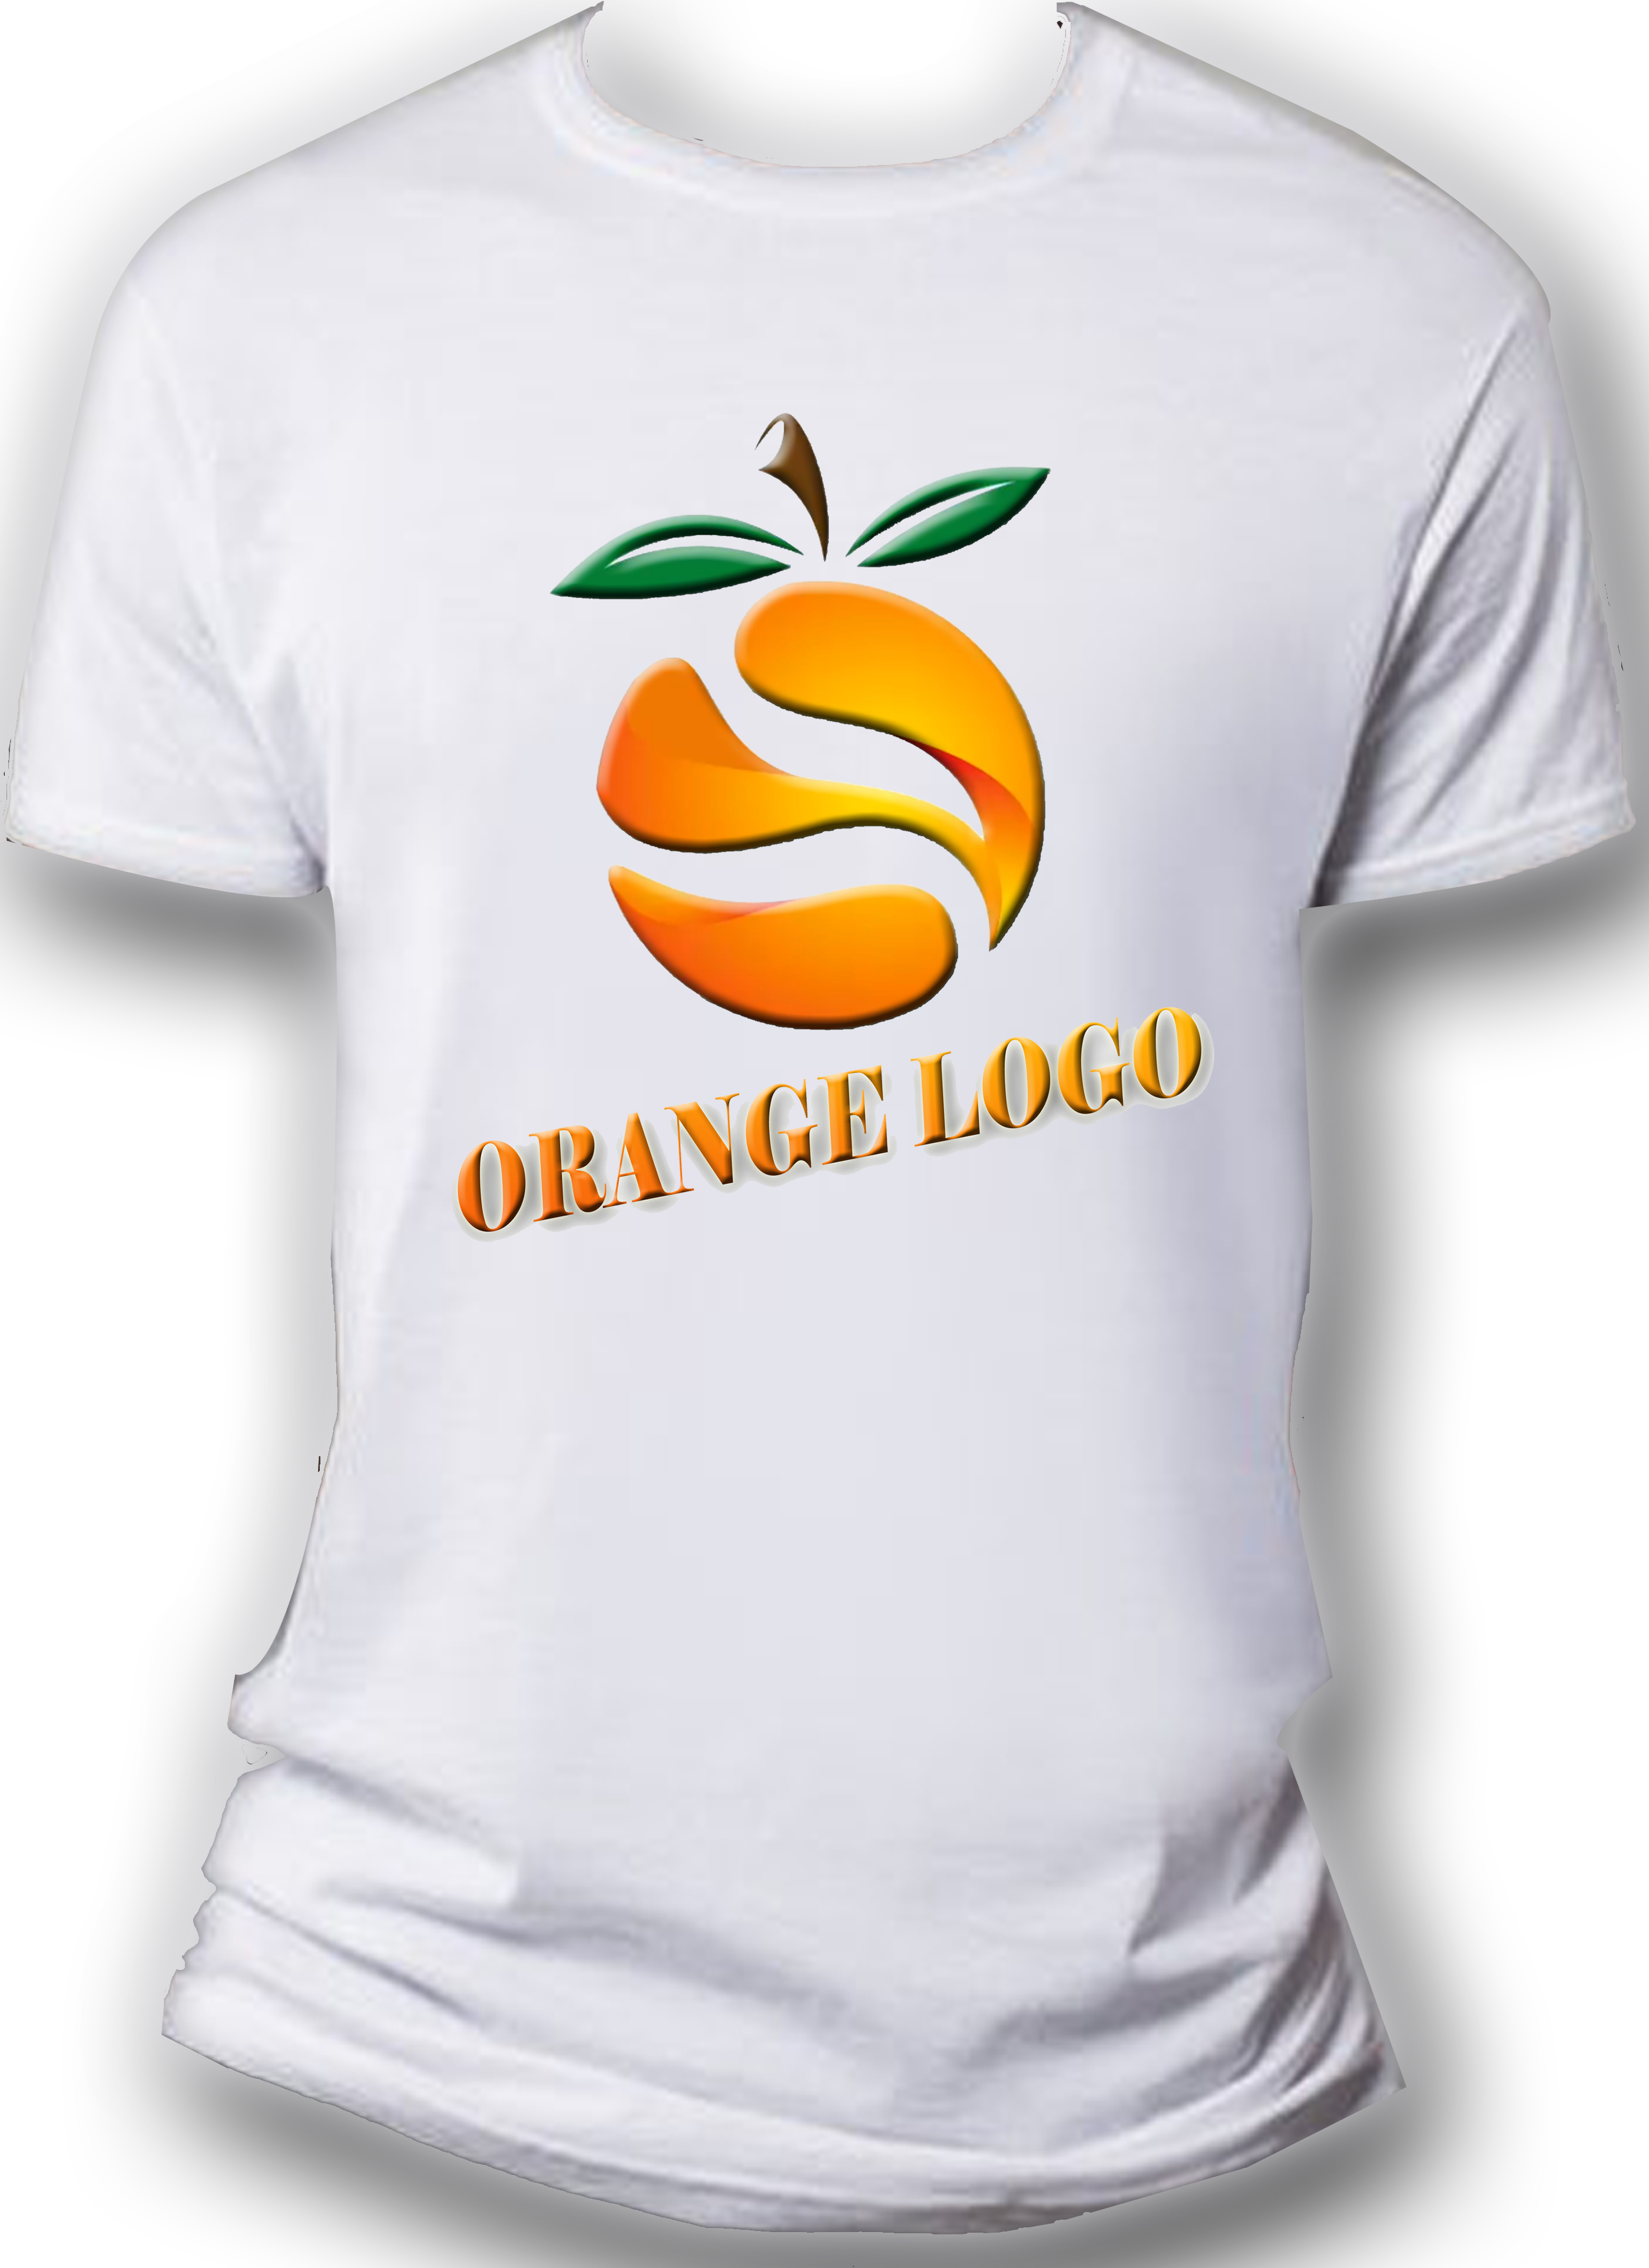 Simple White T-Shirt With Orange logo | T-Shirts | Mens tops